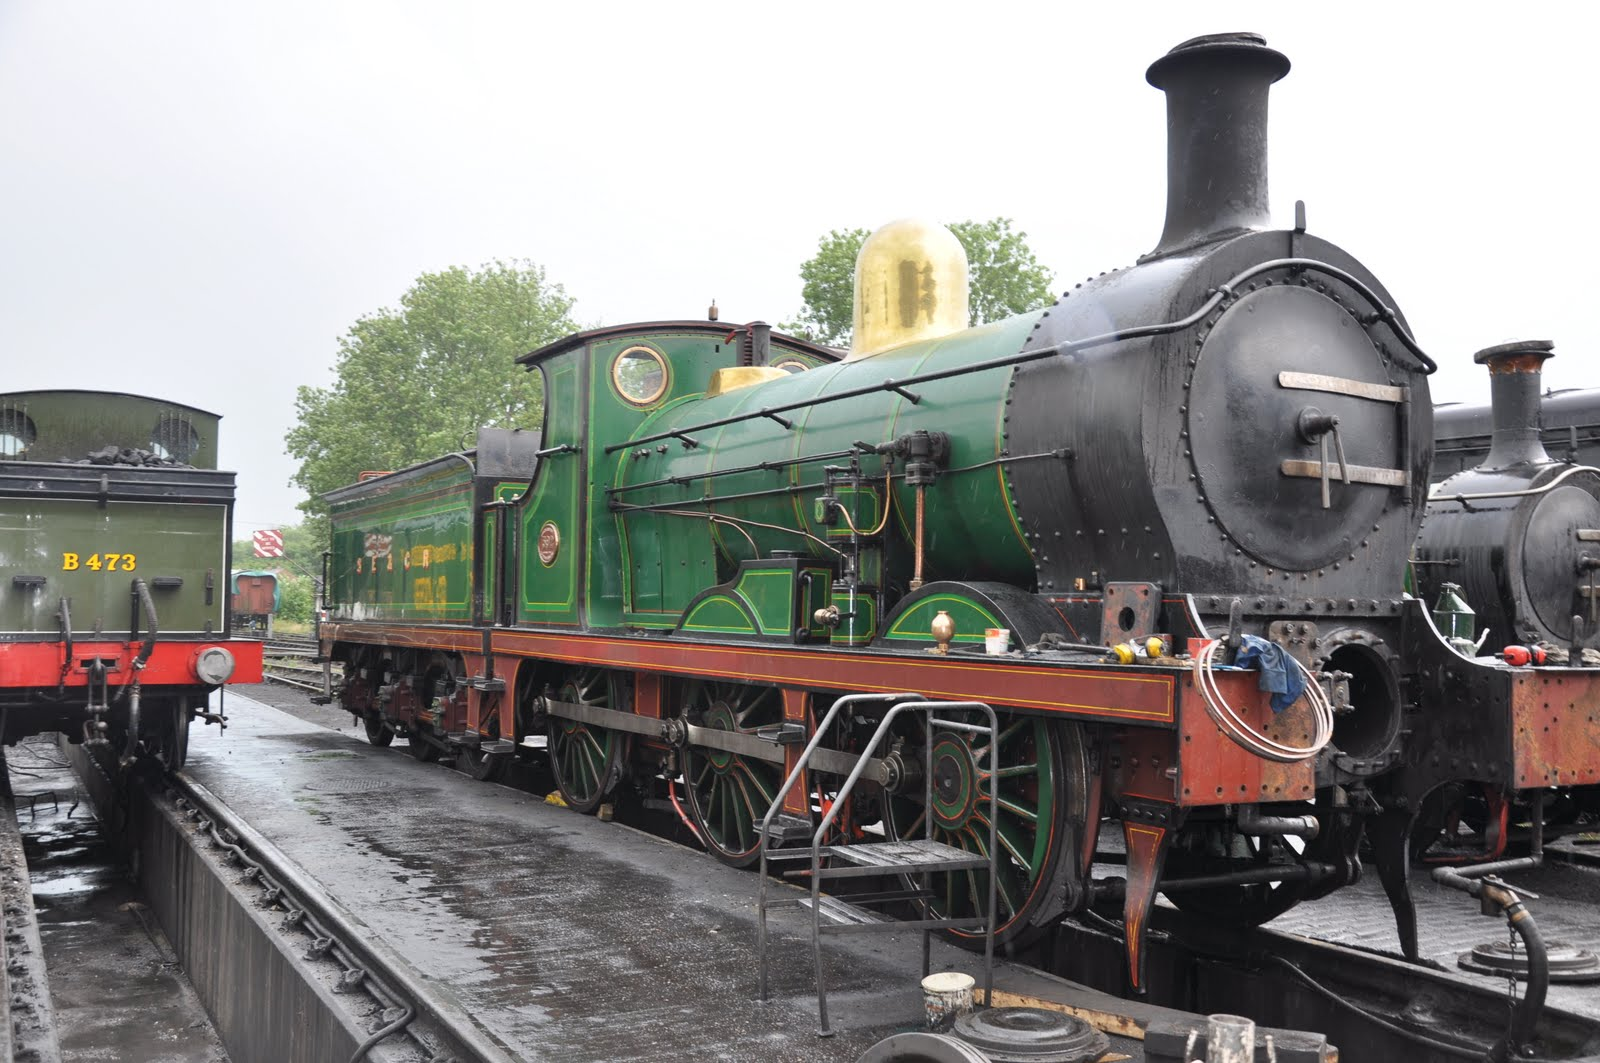 British Steam Engine Trains